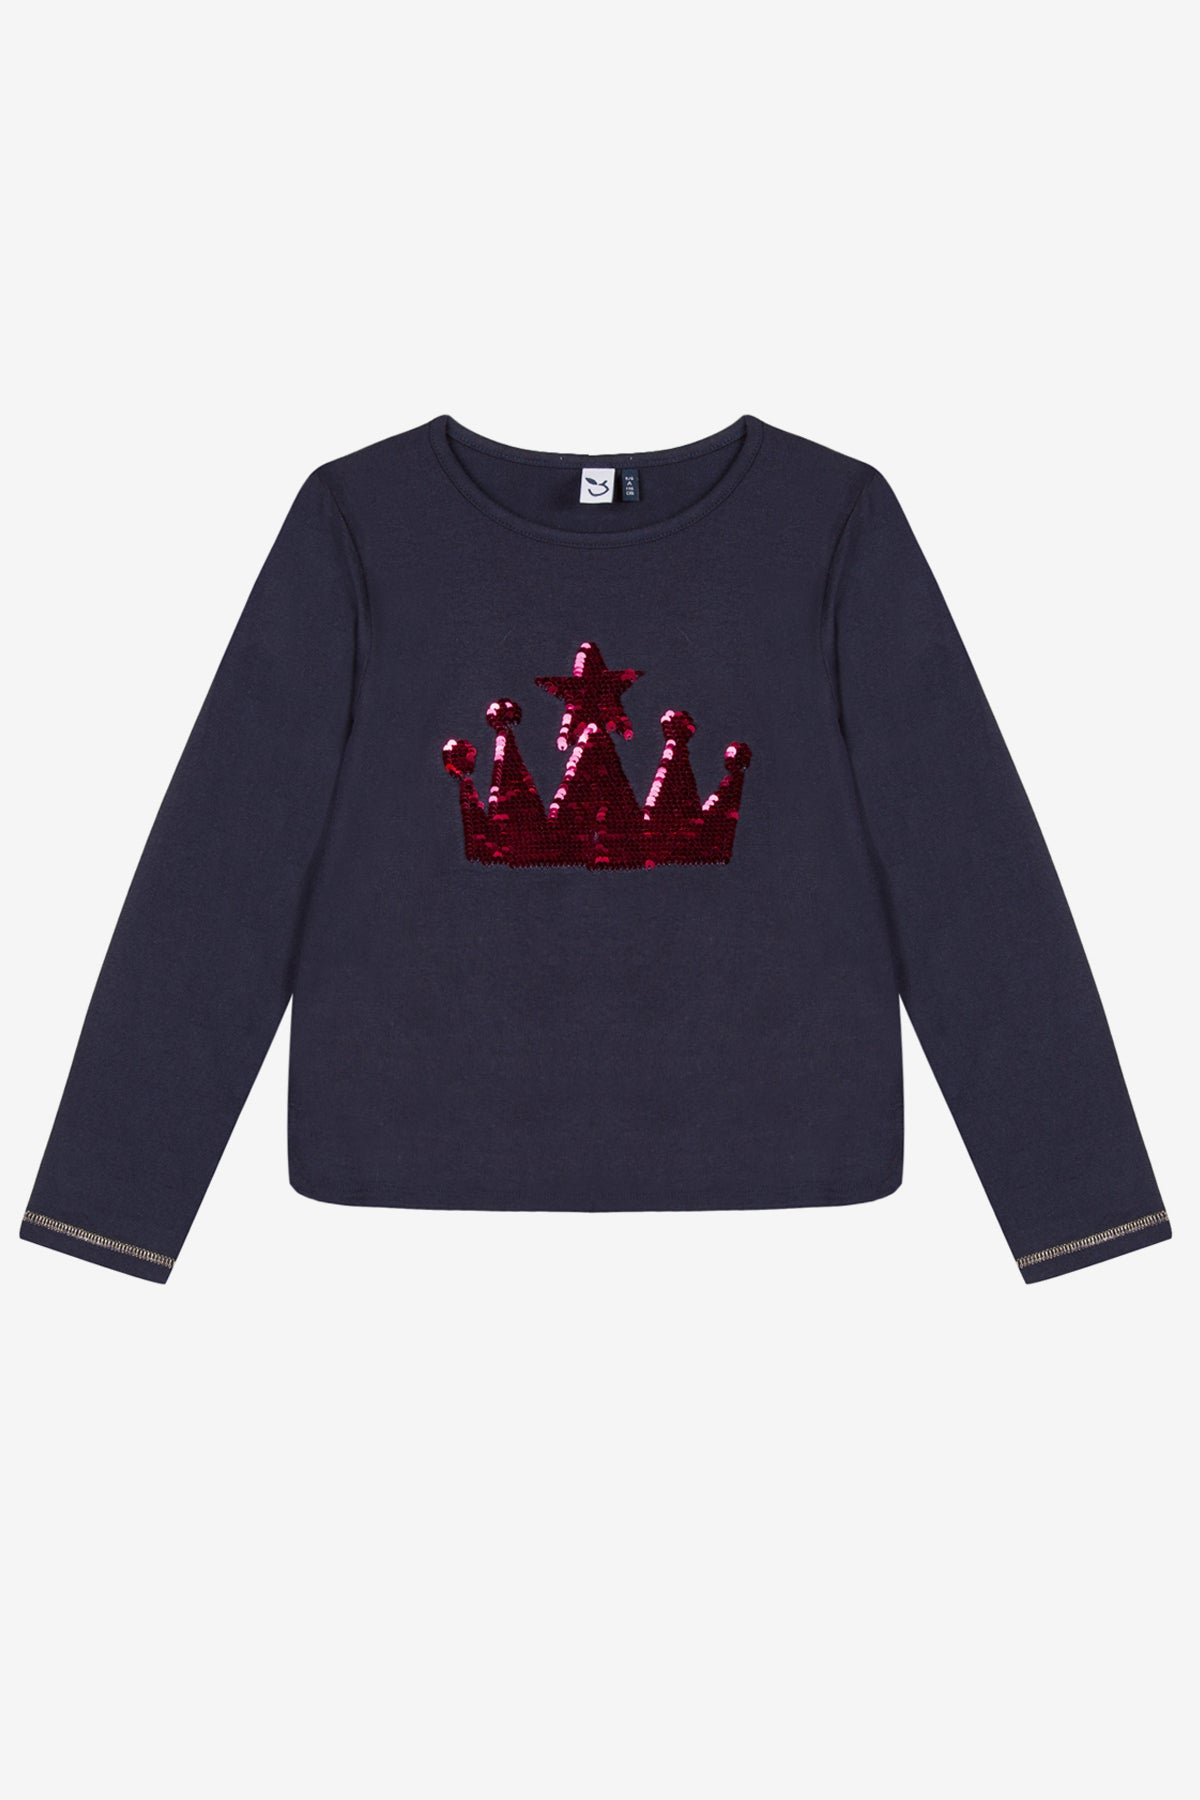 e4ac875d46476 3Pommes Queen s Crown Girls Top